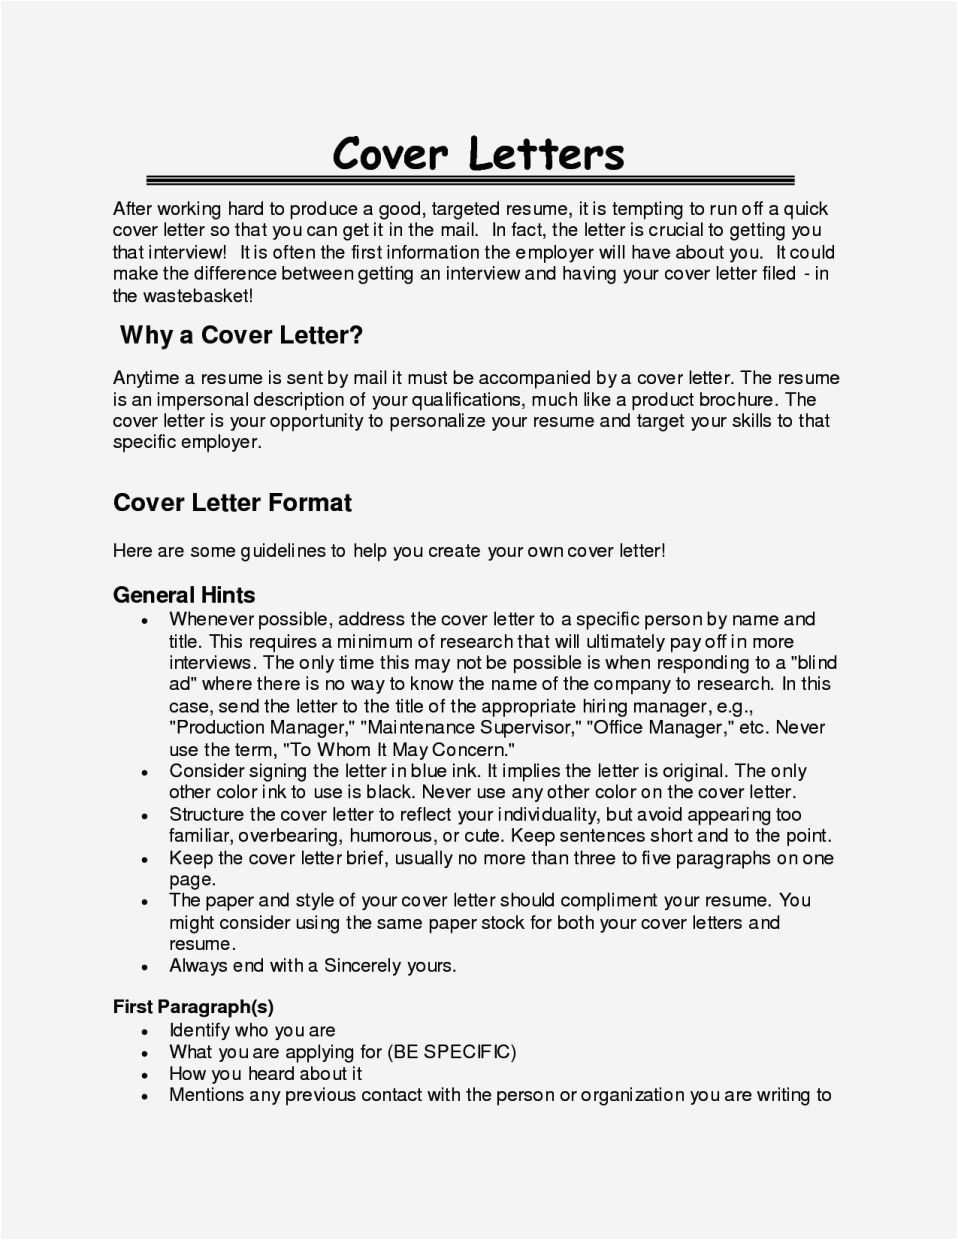 creative openings for cover letters